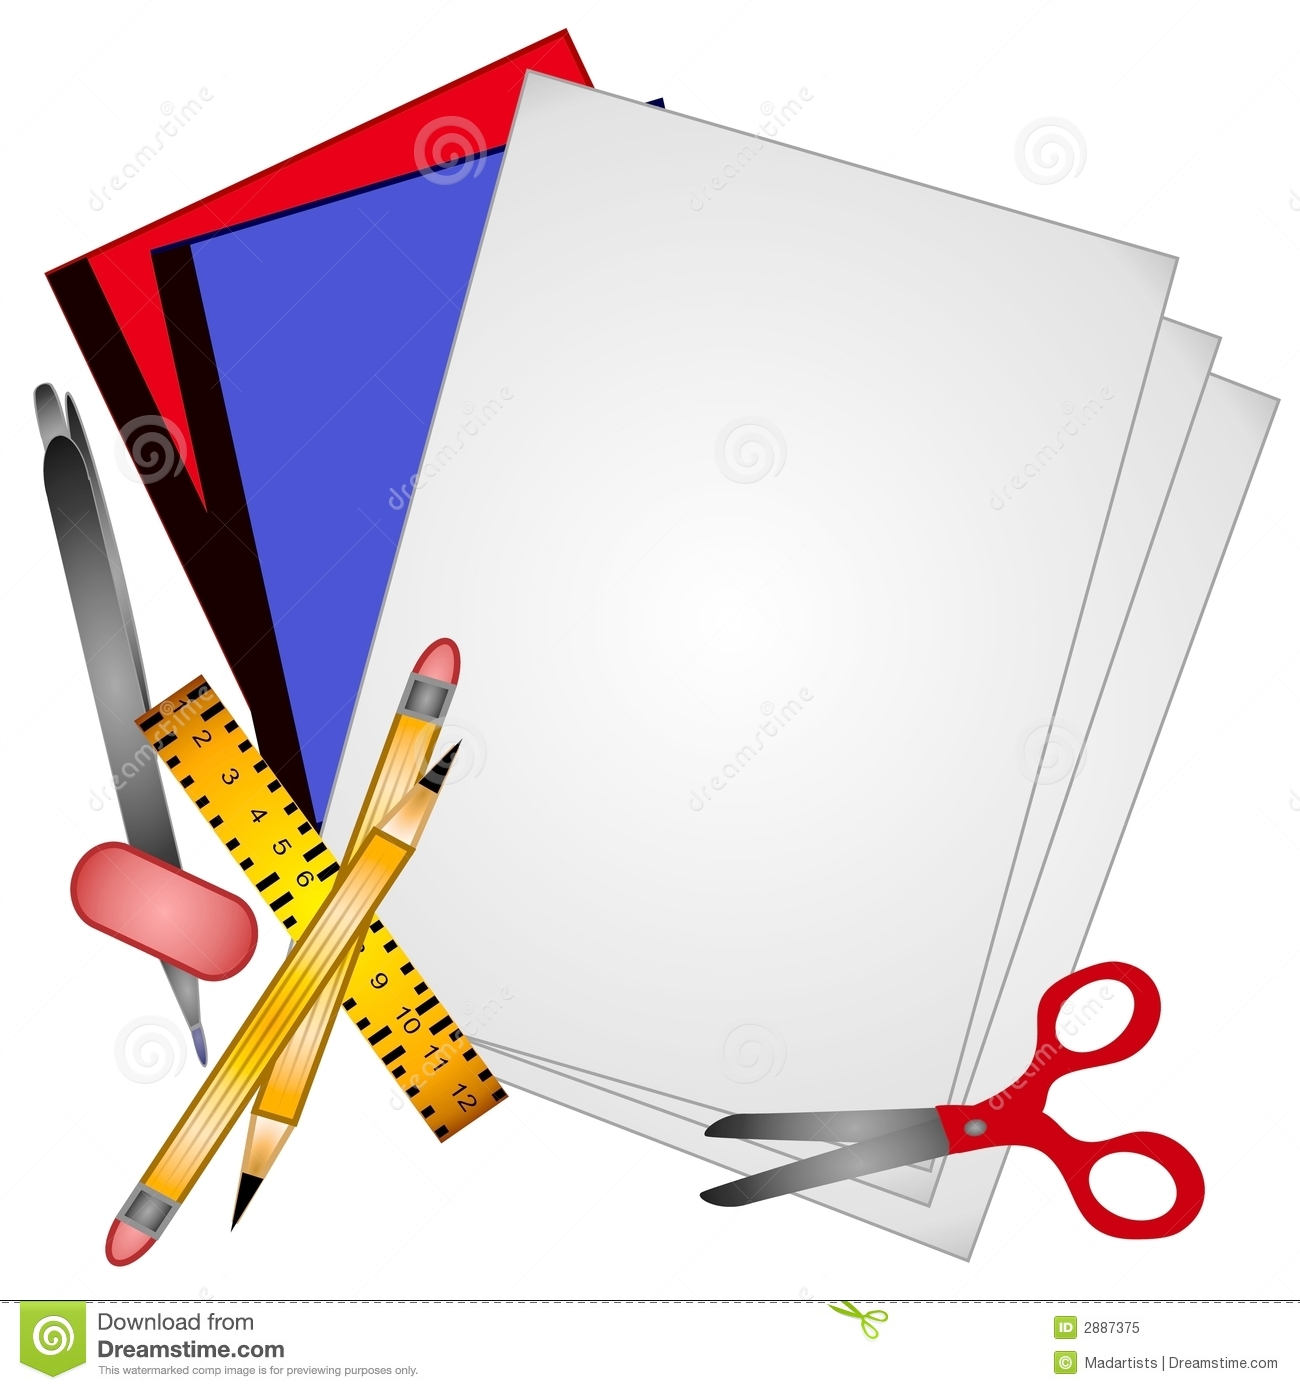 Pencil and free download. Clipart paper school papers